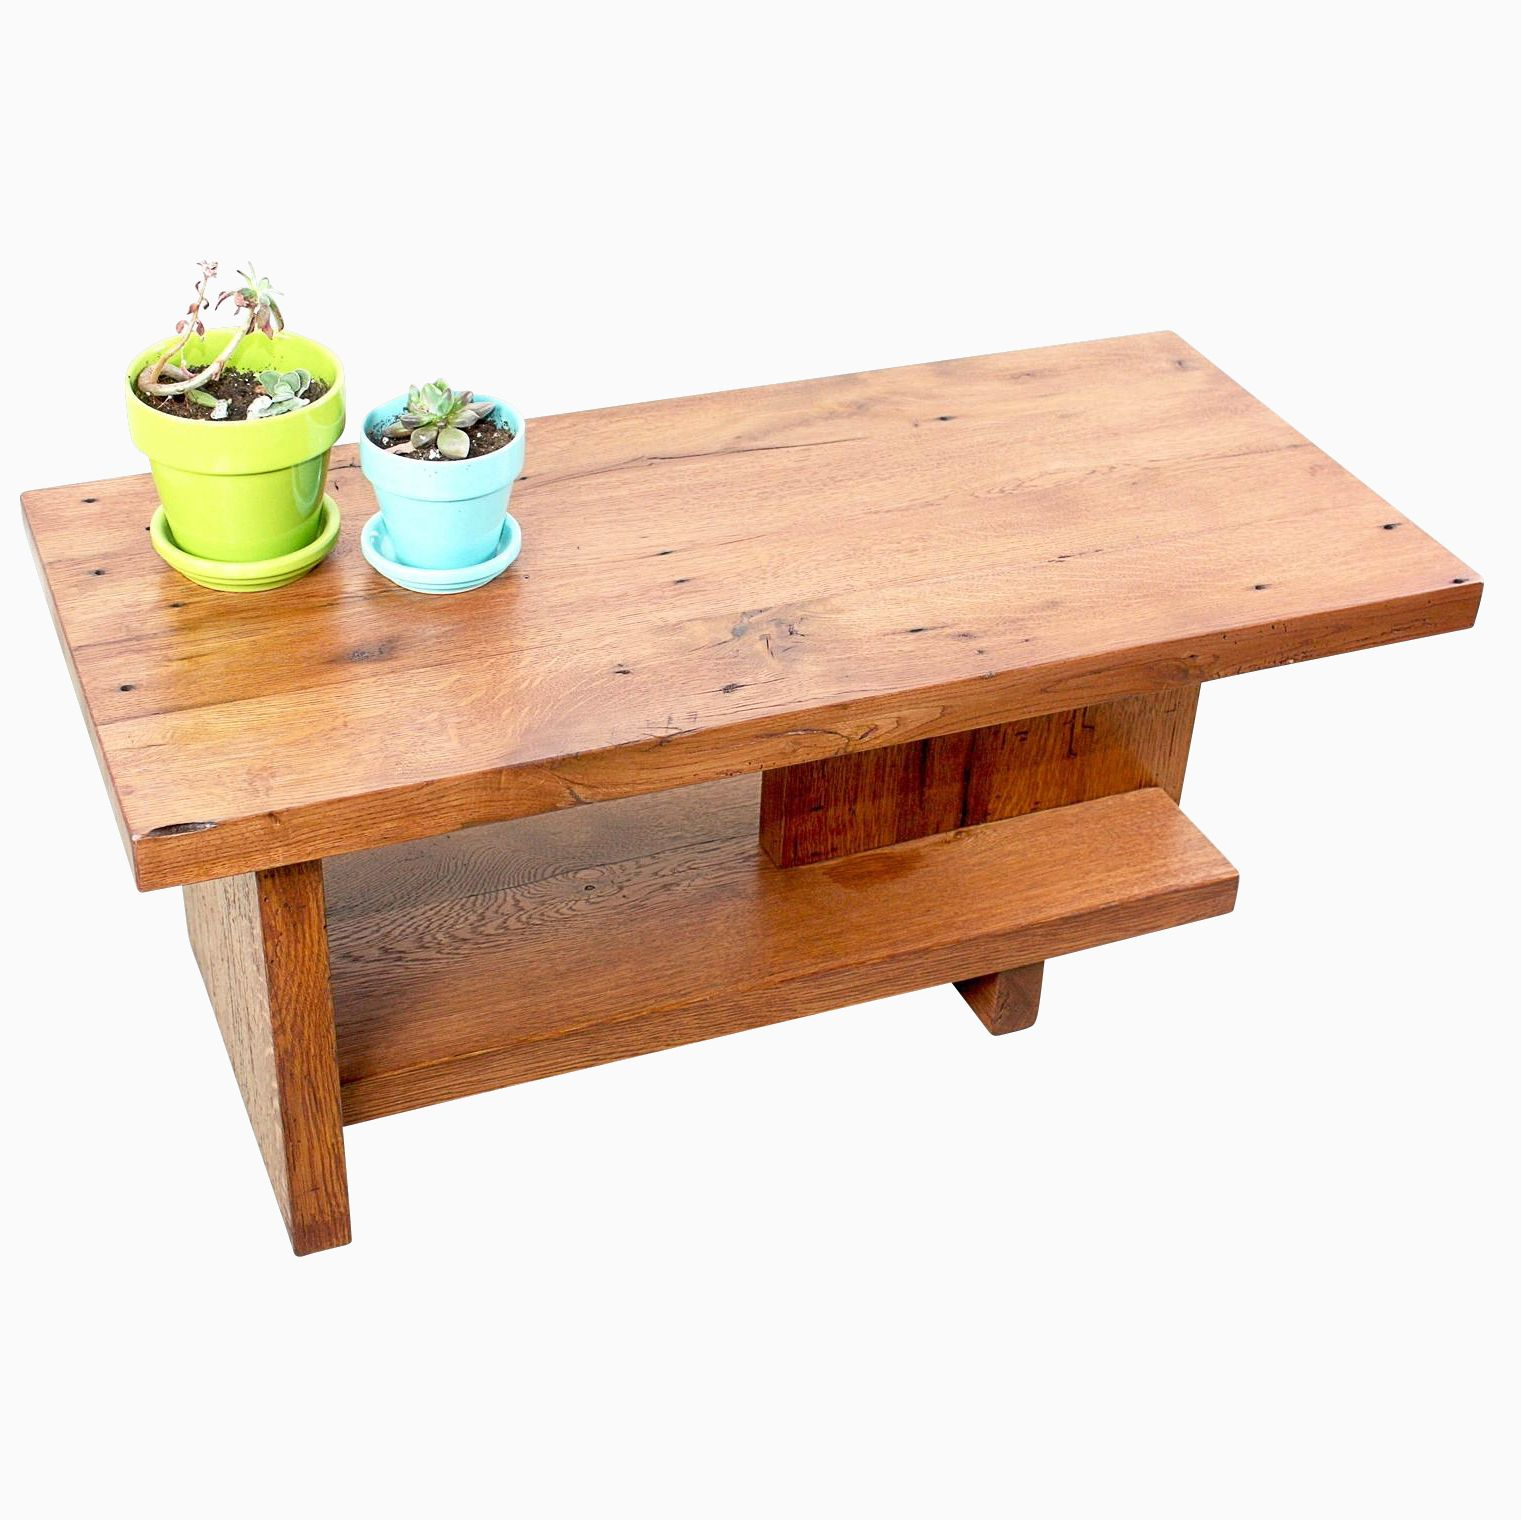 Make A Reclaimed Wood Coffee Table: Buy A Handmade Modern Reclaimed Wood Coffee Table, Made To